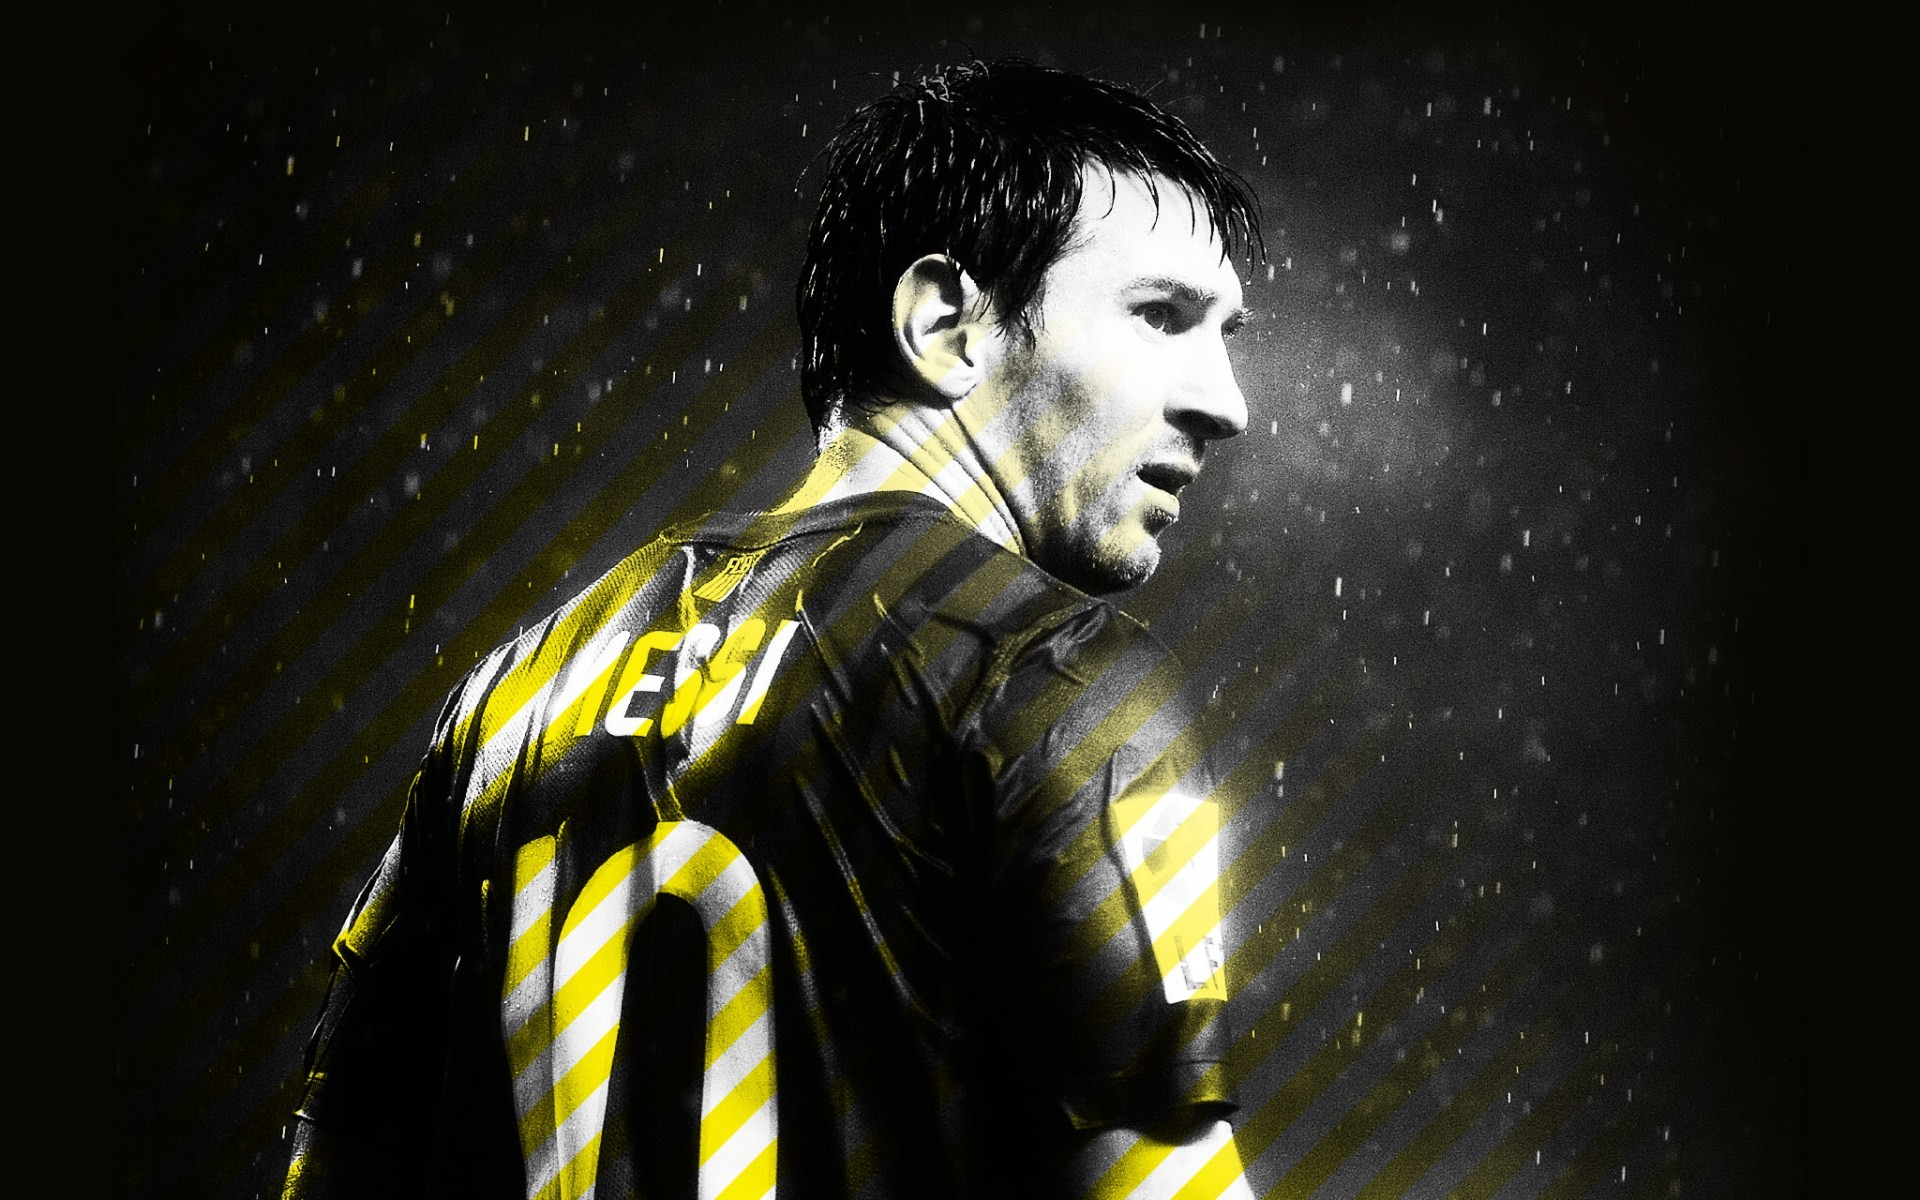 Messi HD Wallpapers The Exclusive List Sporteology 1920×1080 Messi Hd  Wallpaper (64 Wallpapers